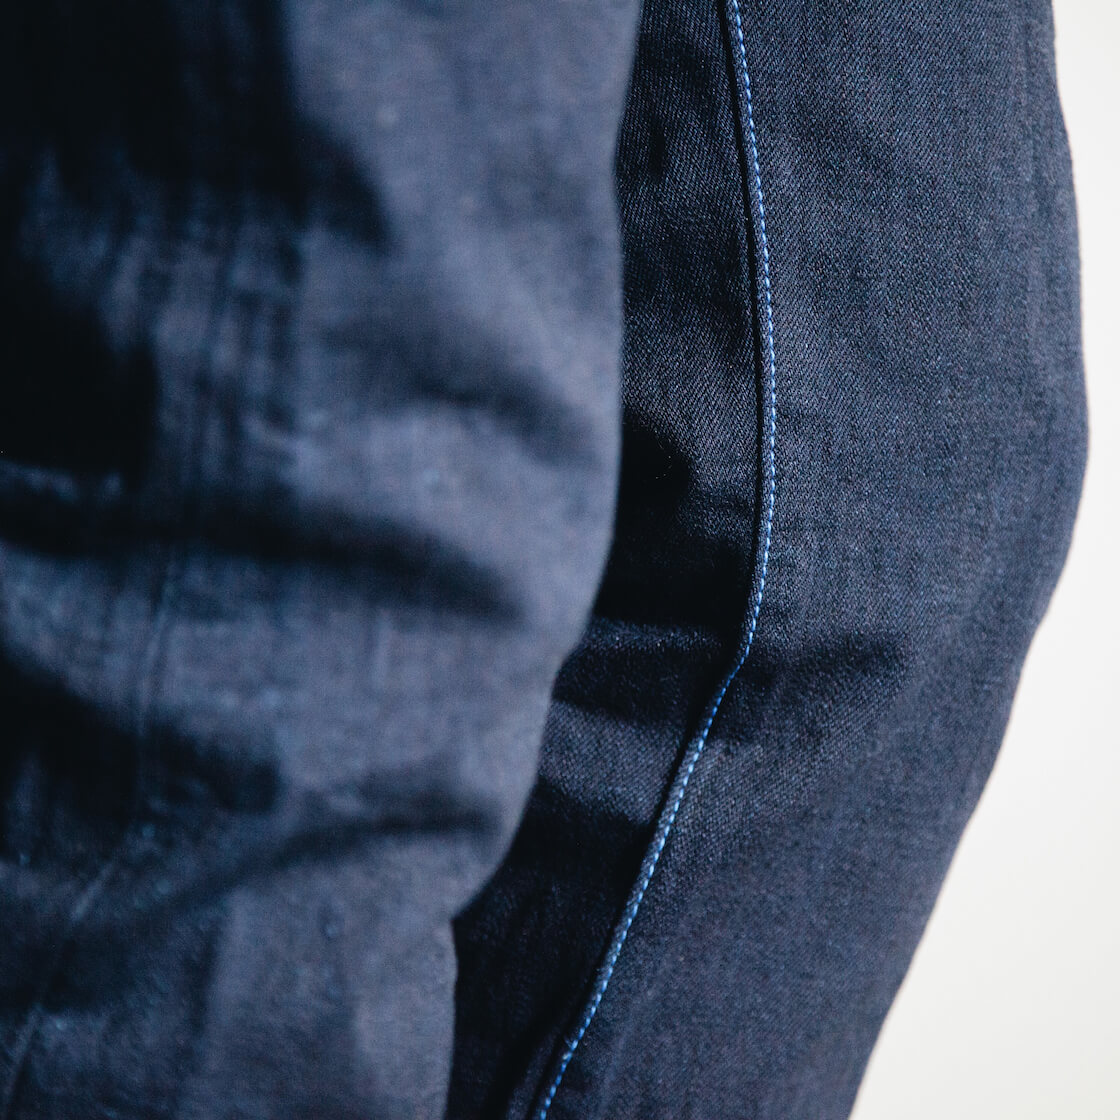 Tanuki IDHT Double Indigo 15oz jeans fabric detail on body